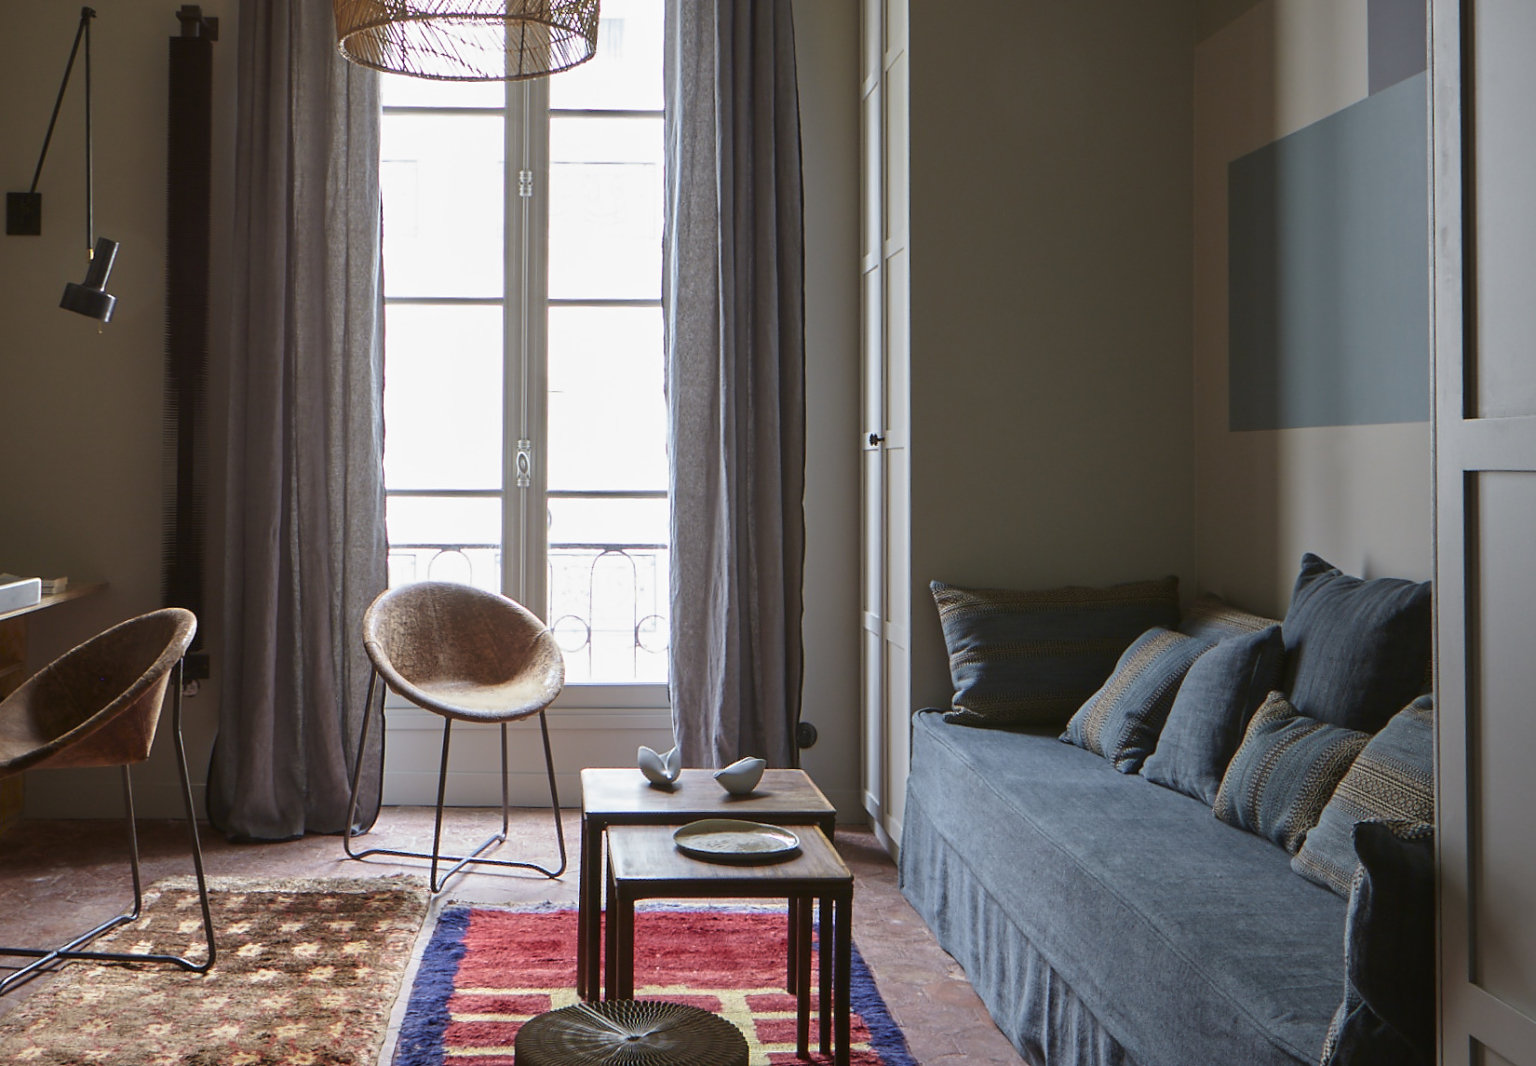 Blue Streak: An Inventive, Postage Stamp-Sized Flat in the Center of Paris